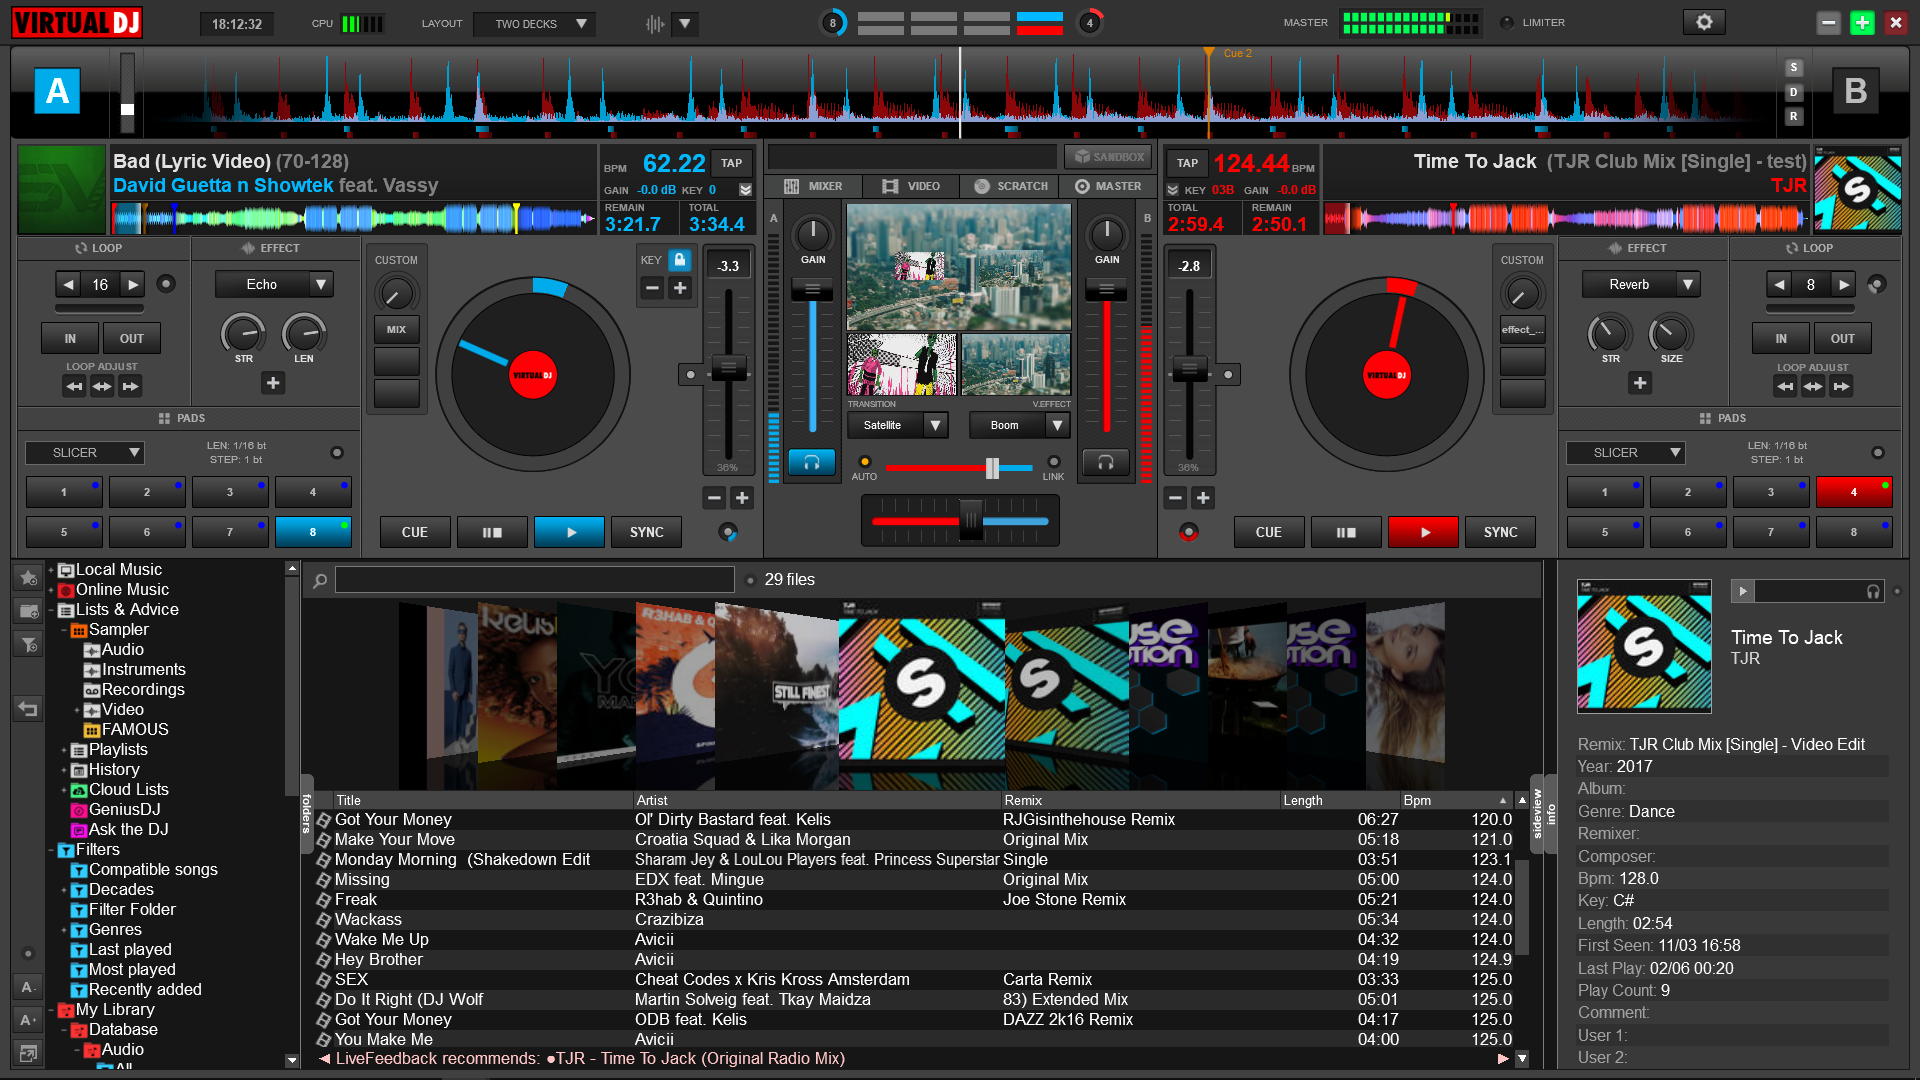 The 8 best samplers for virtual dj